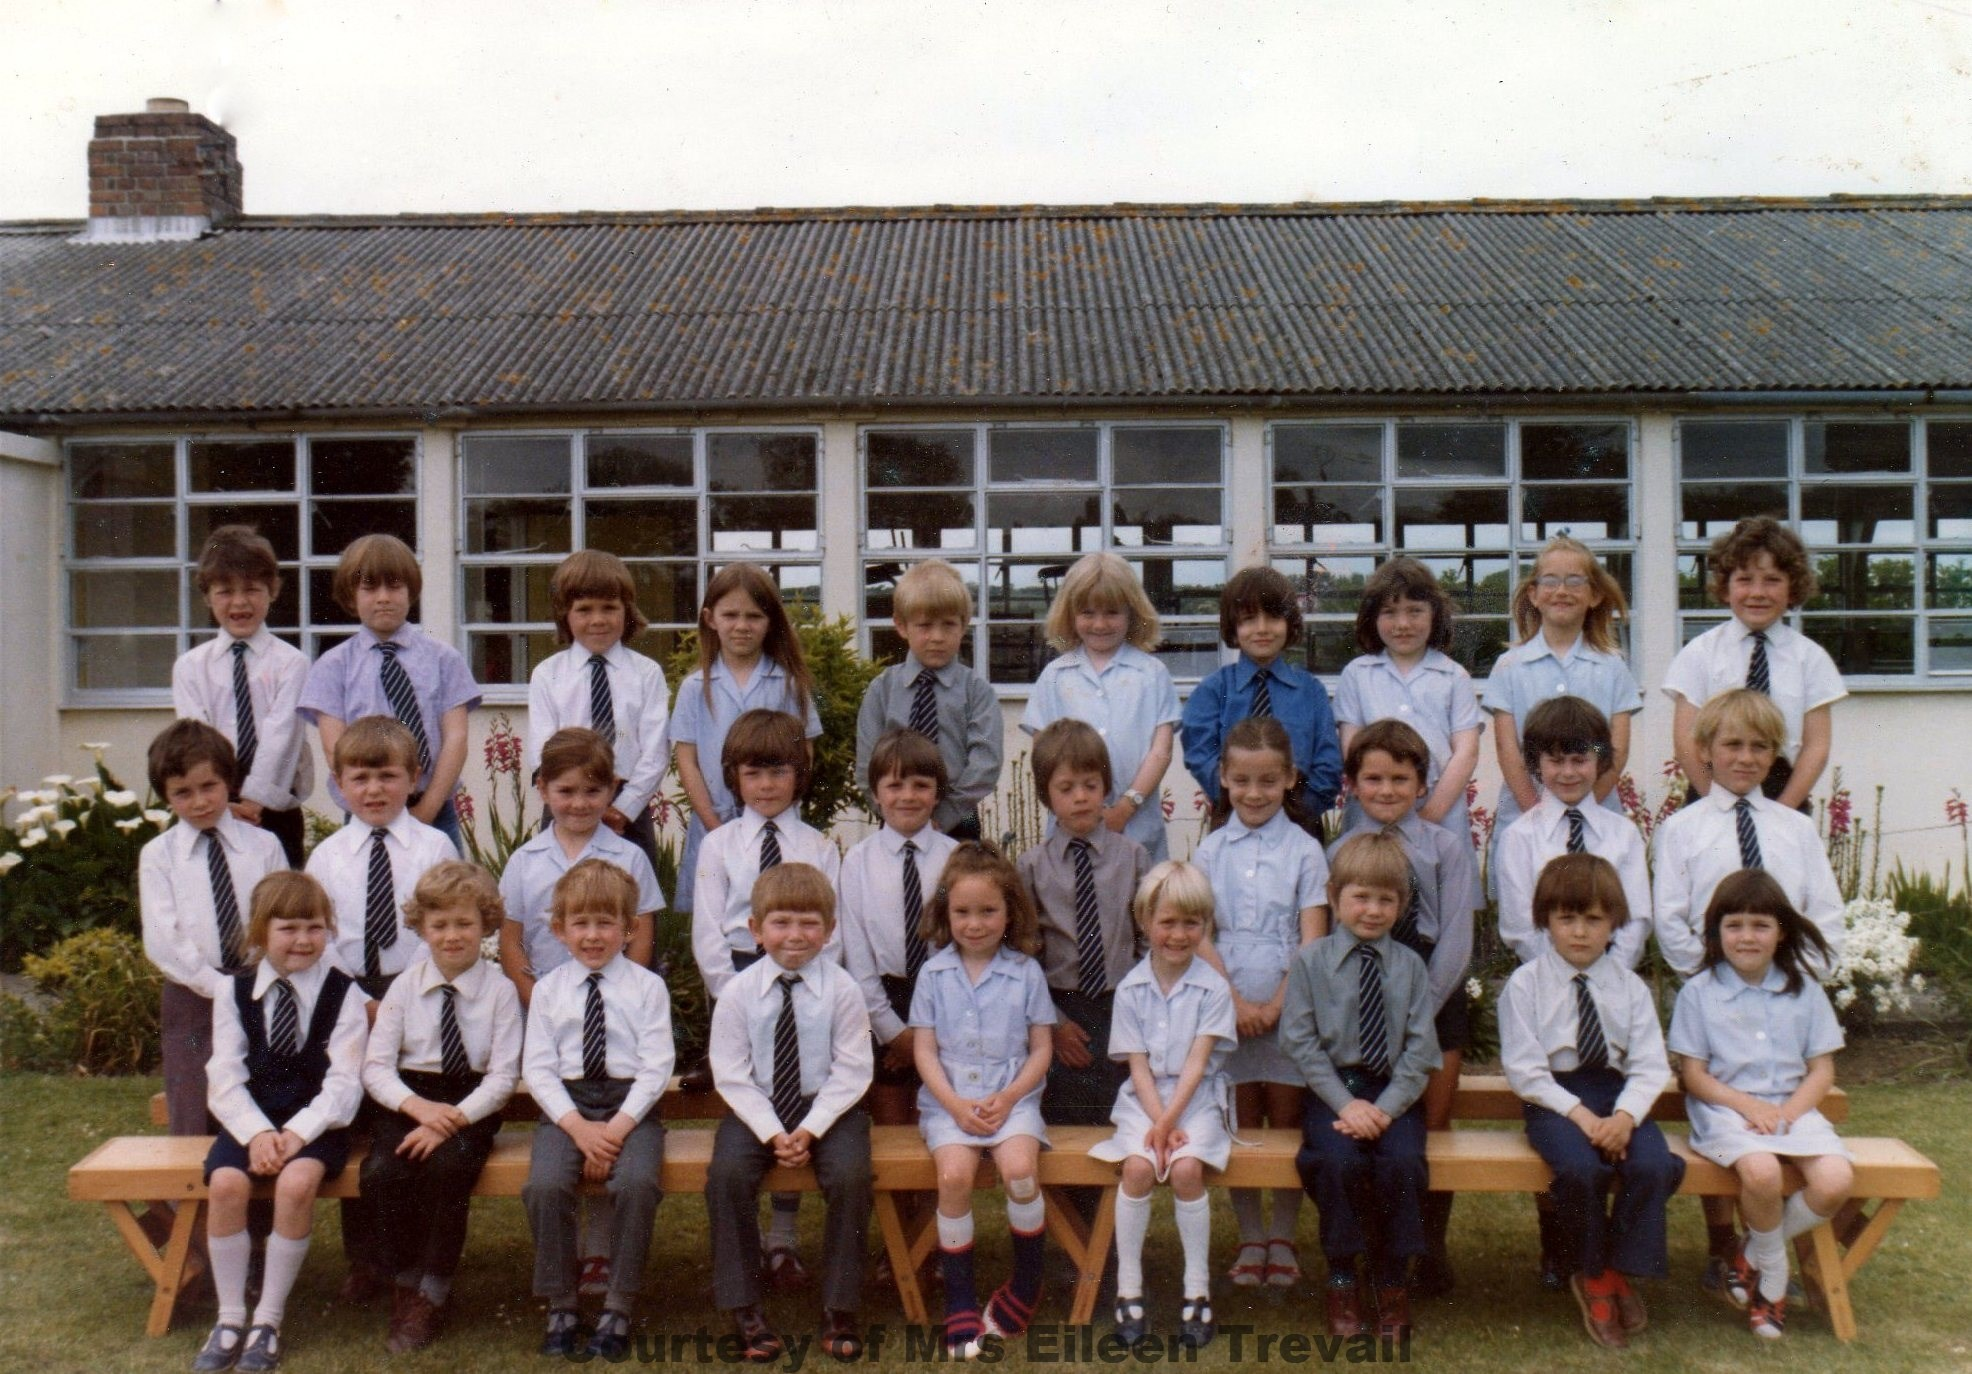 Goonhavern School Classes 1976